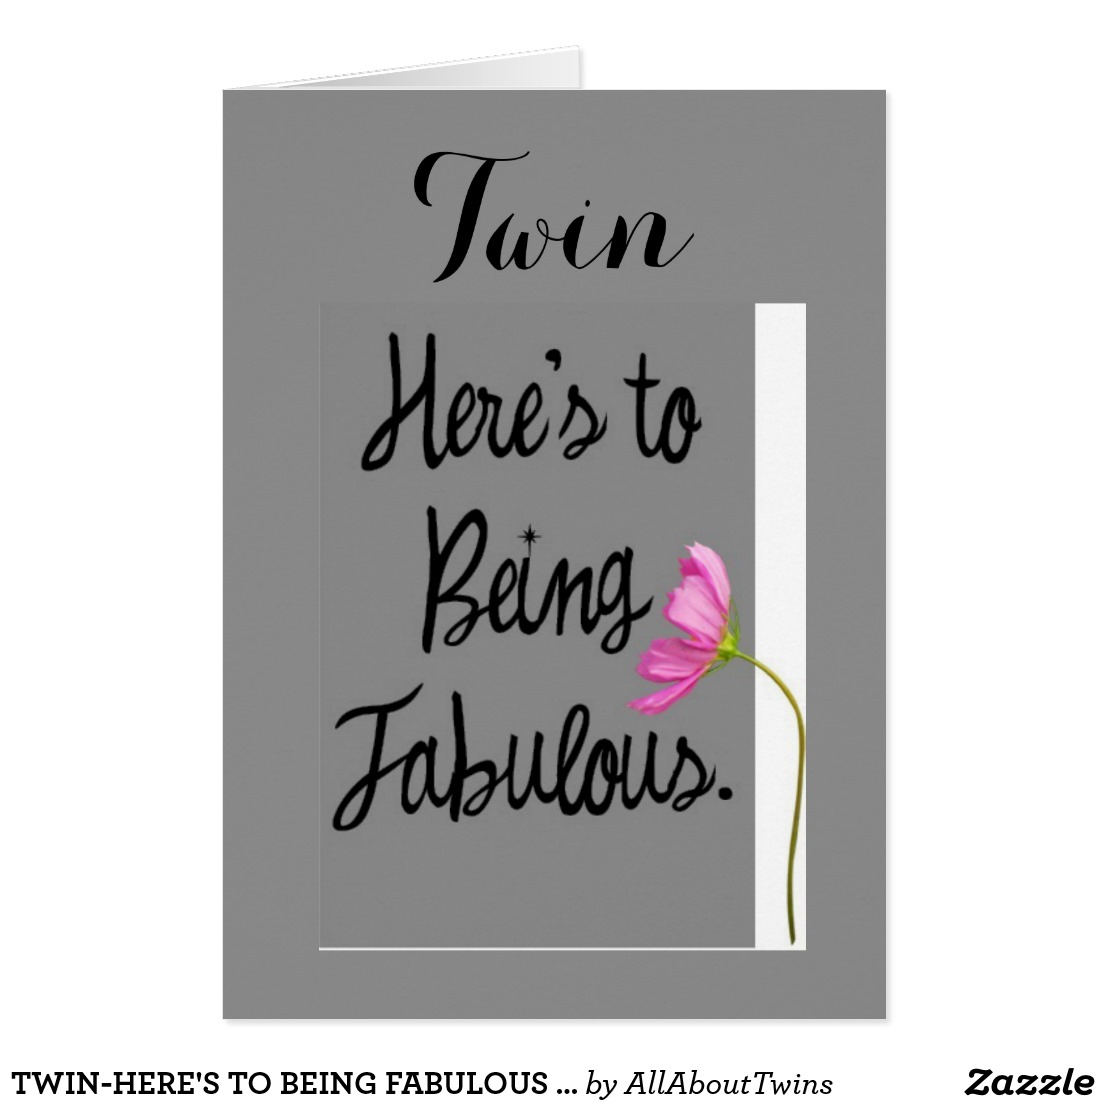 twins birthday wishes greeting card ; 60cf908f470448ce9358bdc60a7d0717